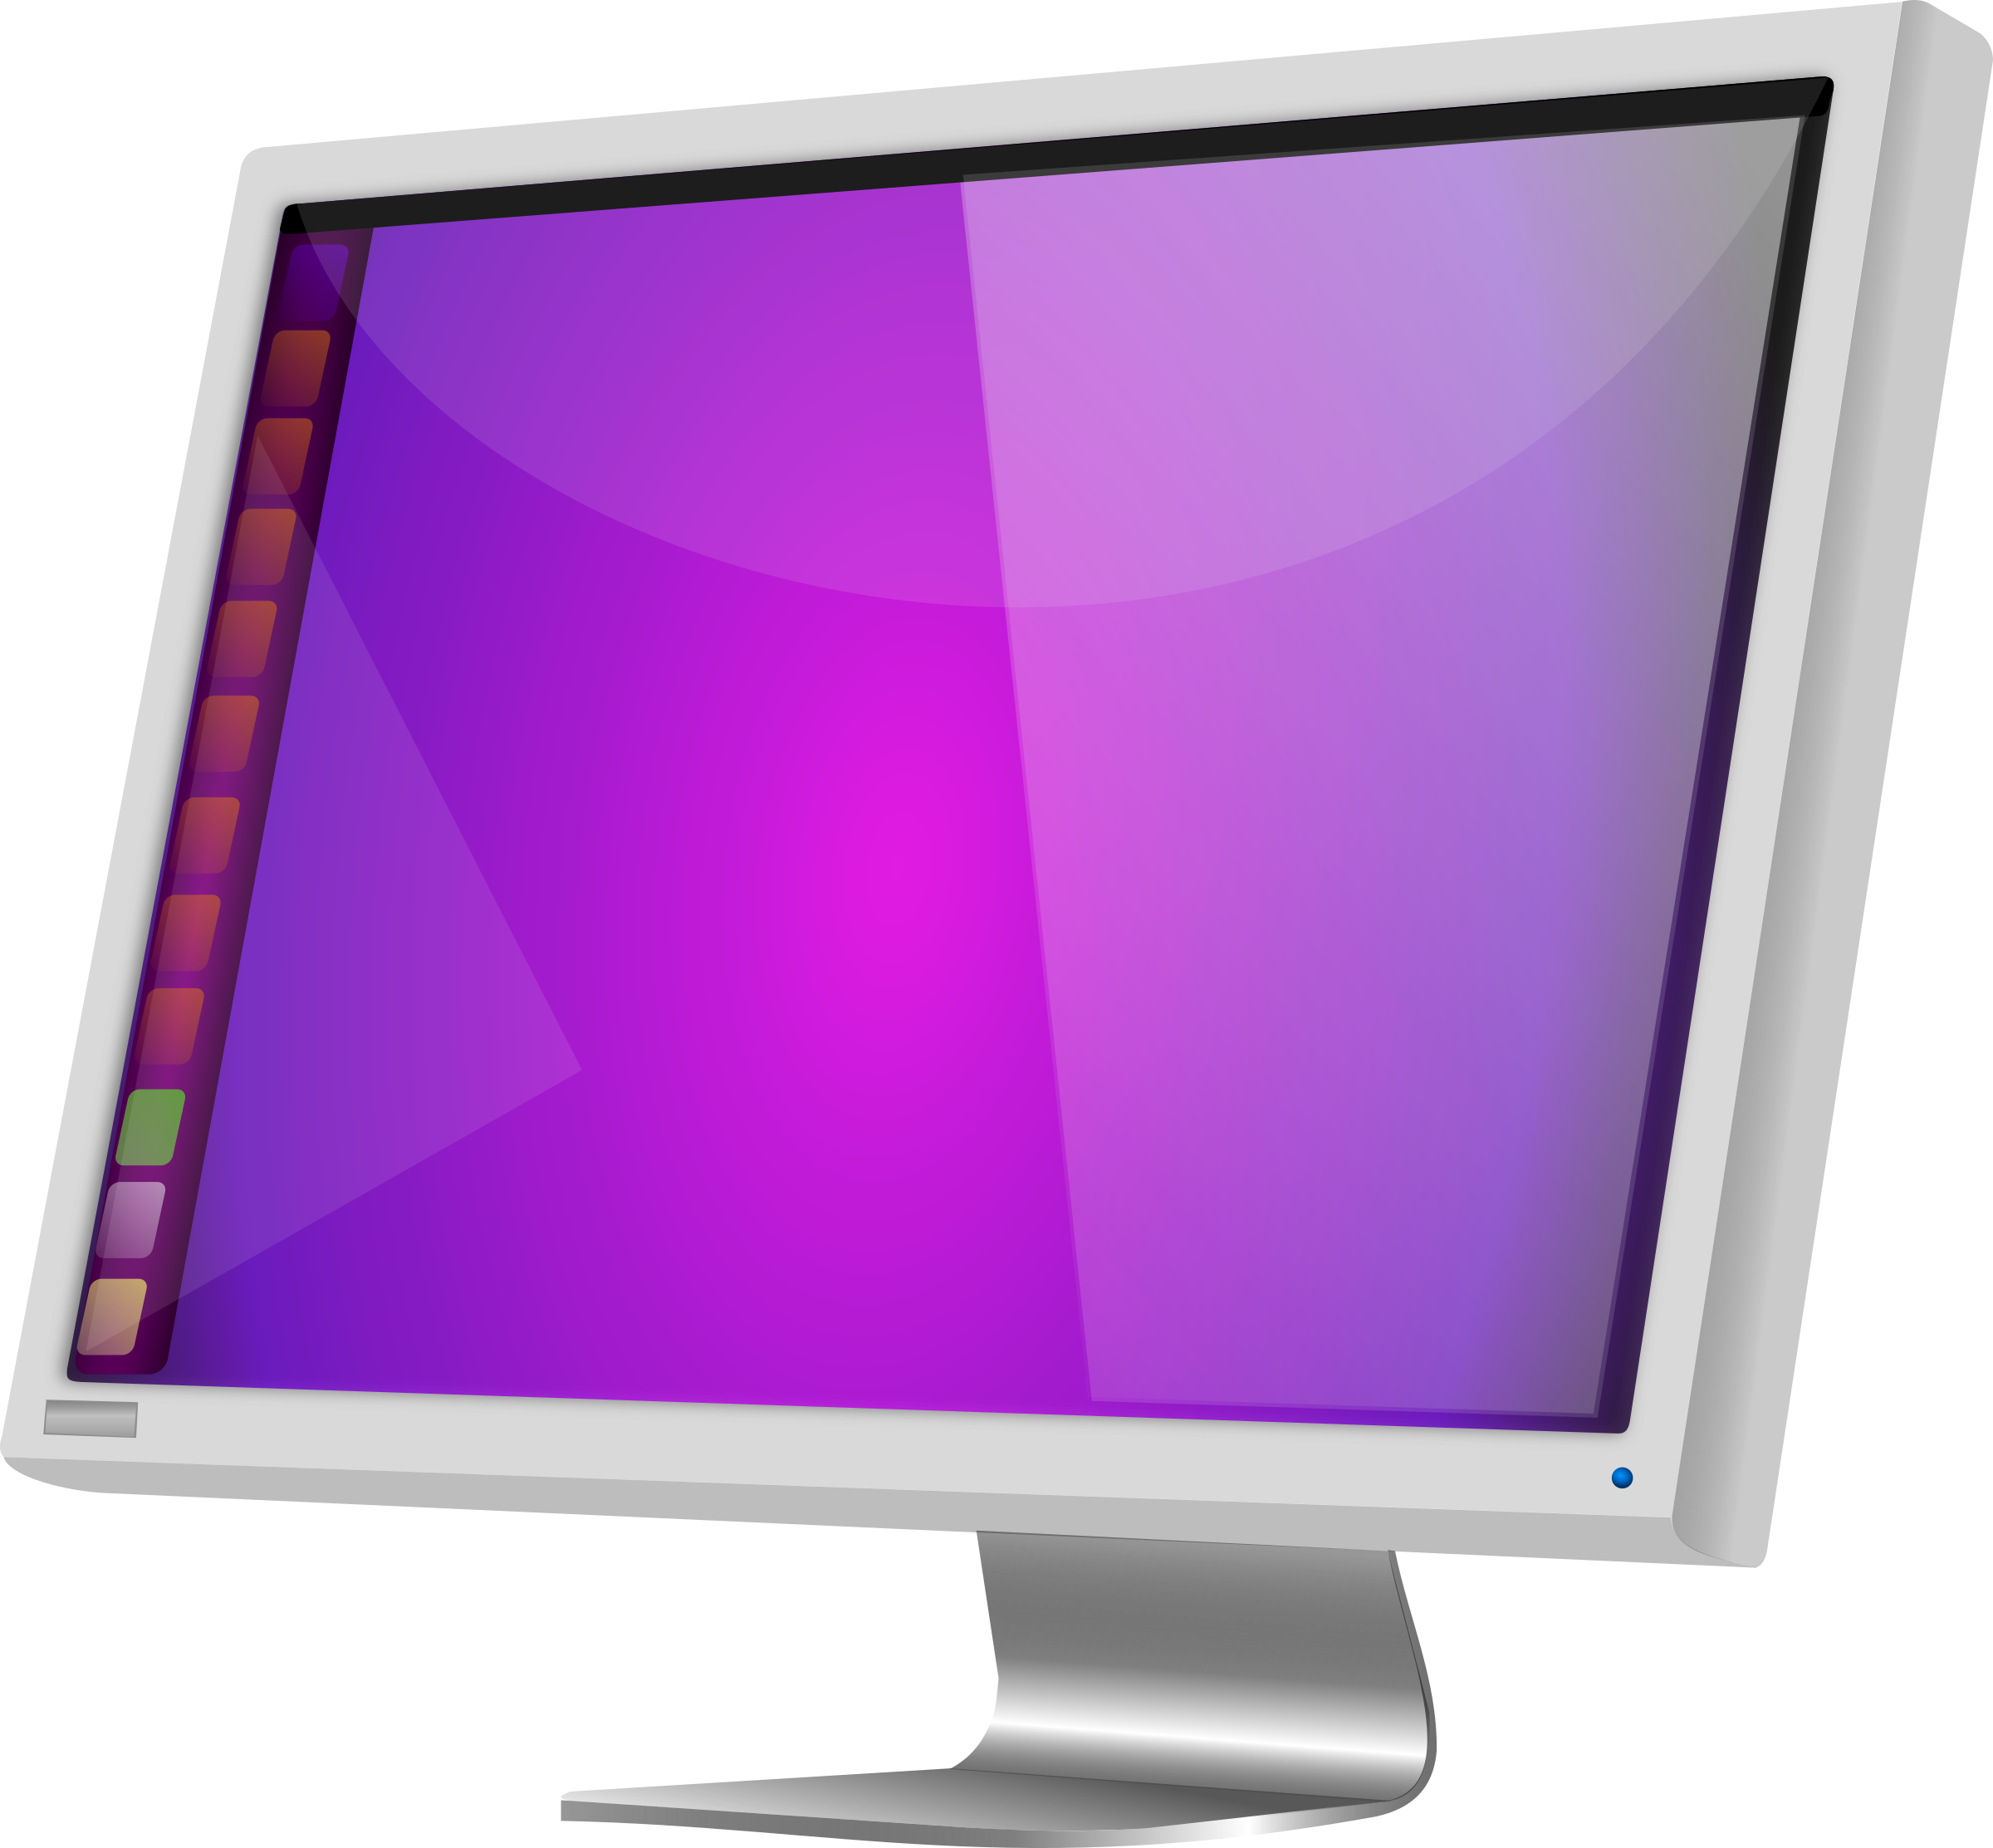 Big Image (Png) - Lcd, Transparent background PNG HD thumbnail